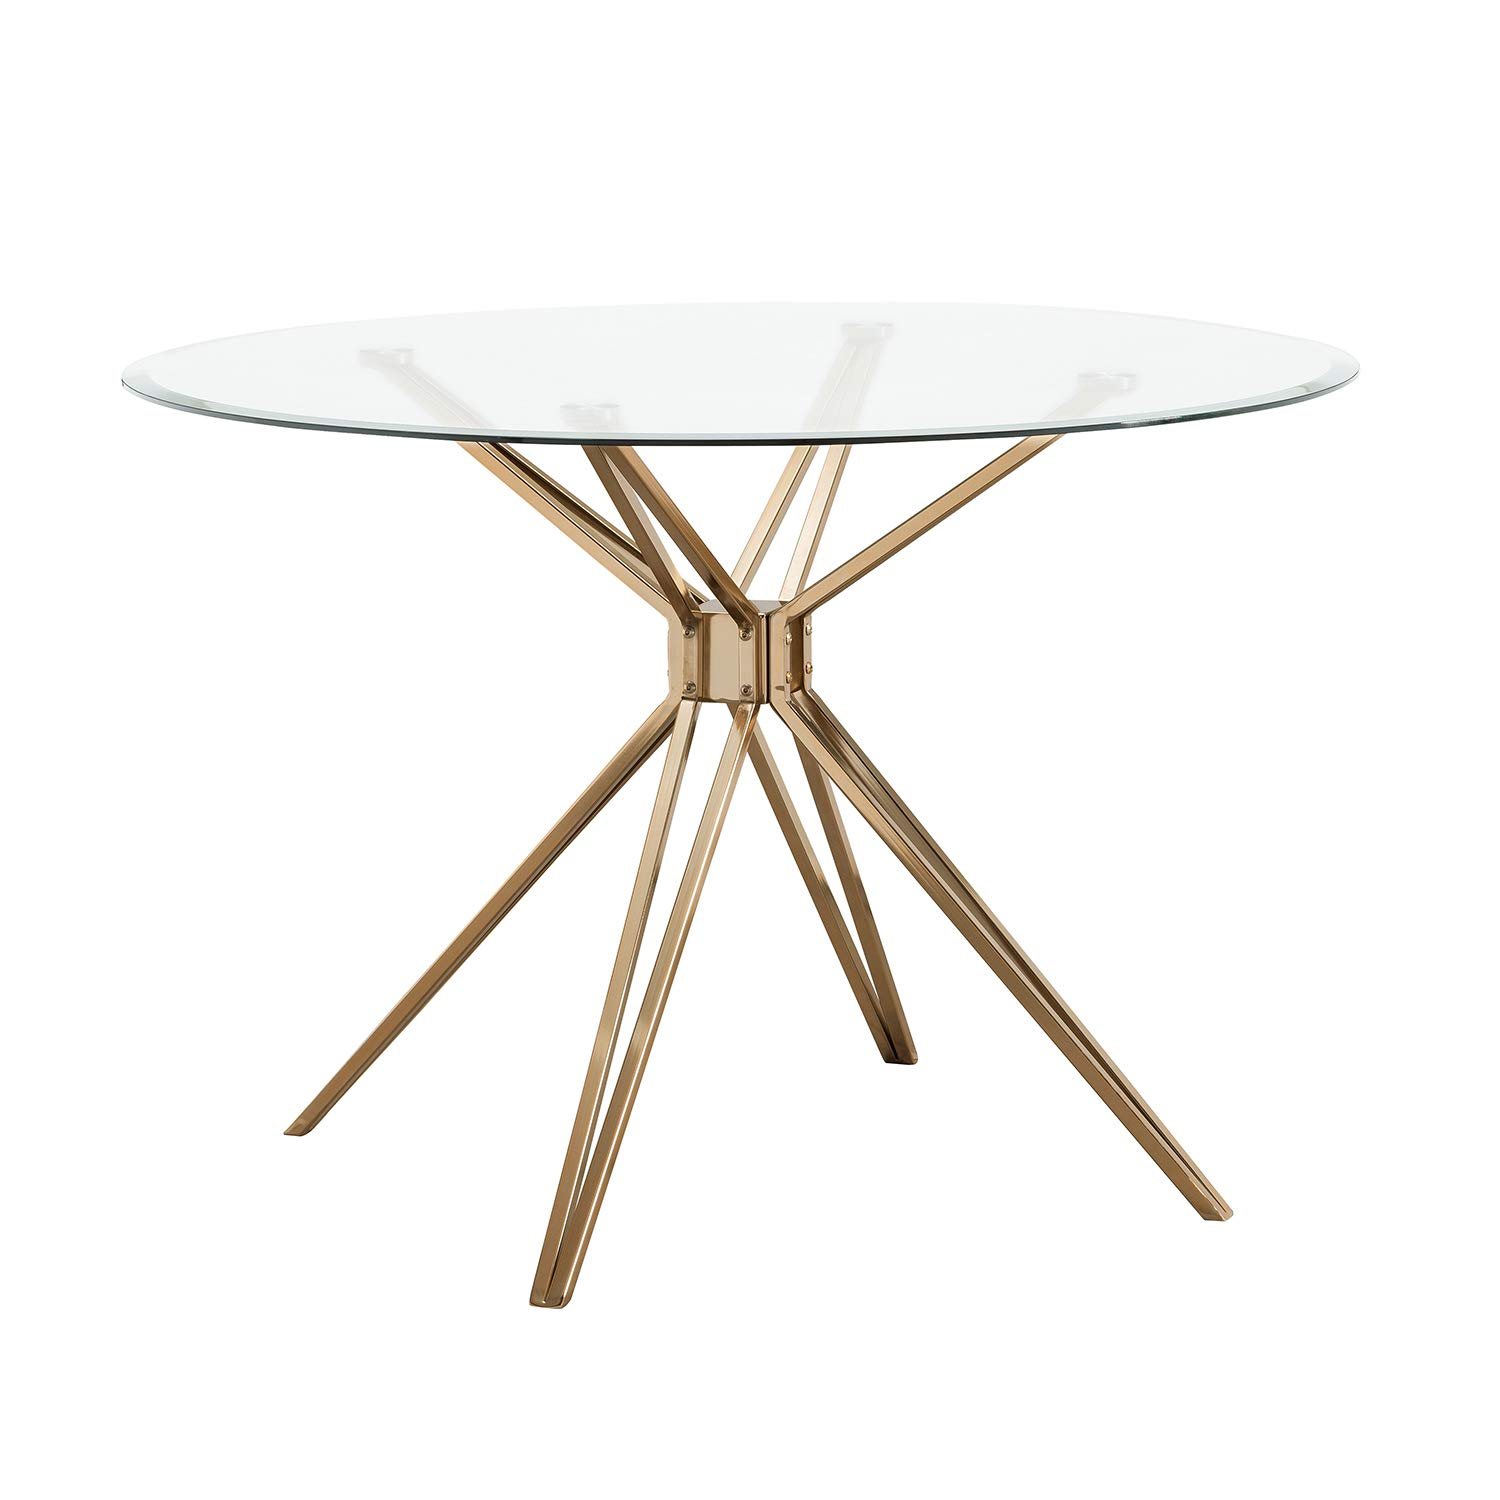 Southern Enterprises AMZ9360ND Atticus Dining Table, Gold